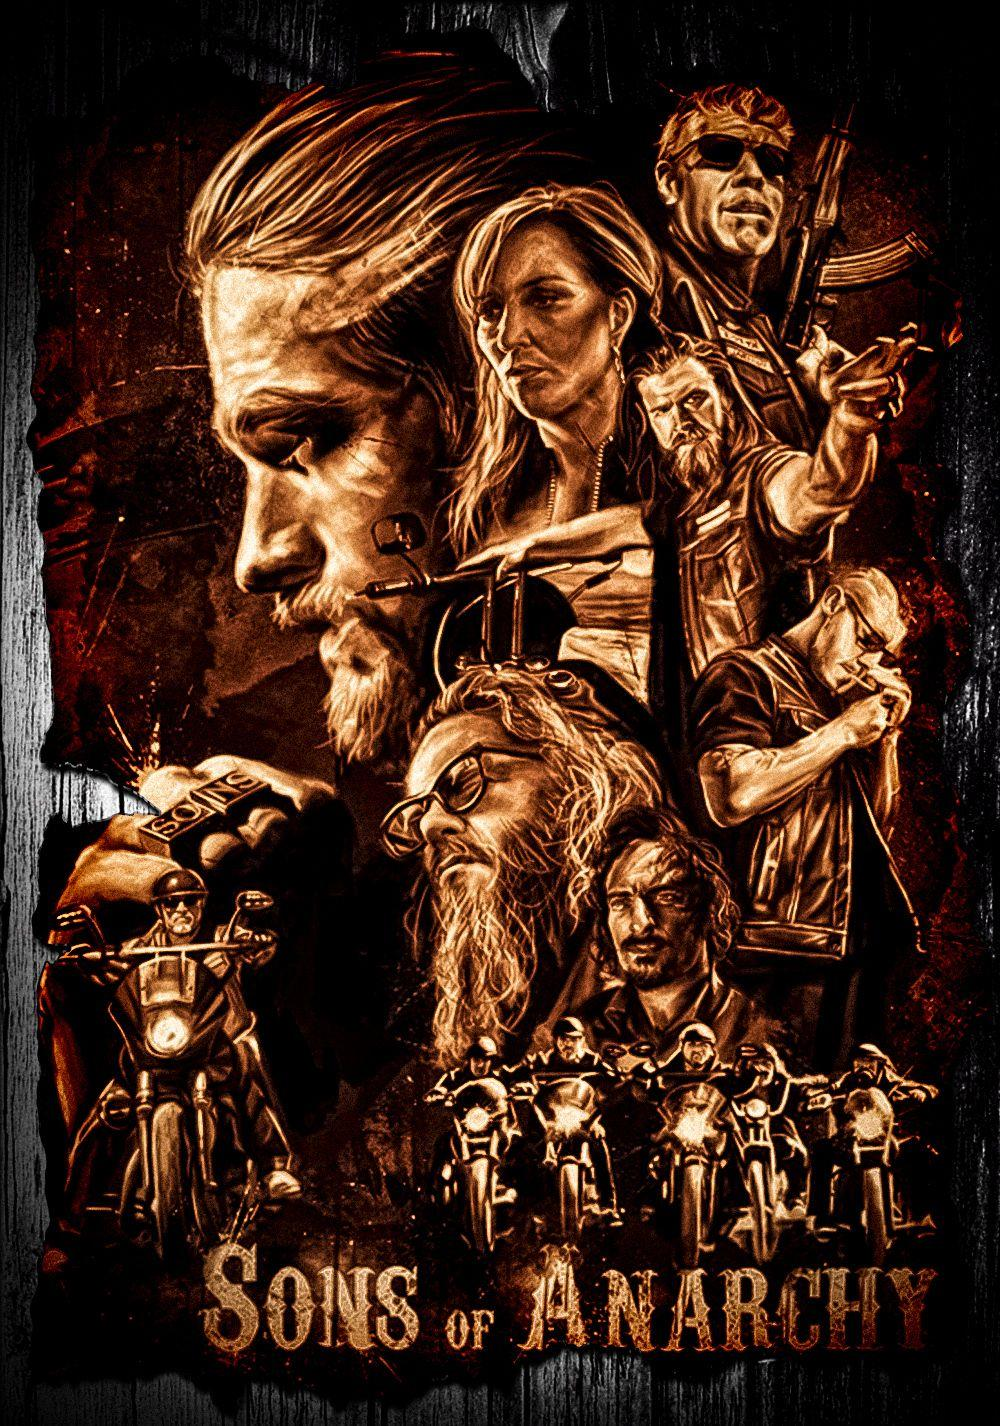 TV Detail - fanart.tv   Sons of anarchy, Sons of anarchy tattoos, Anarchy